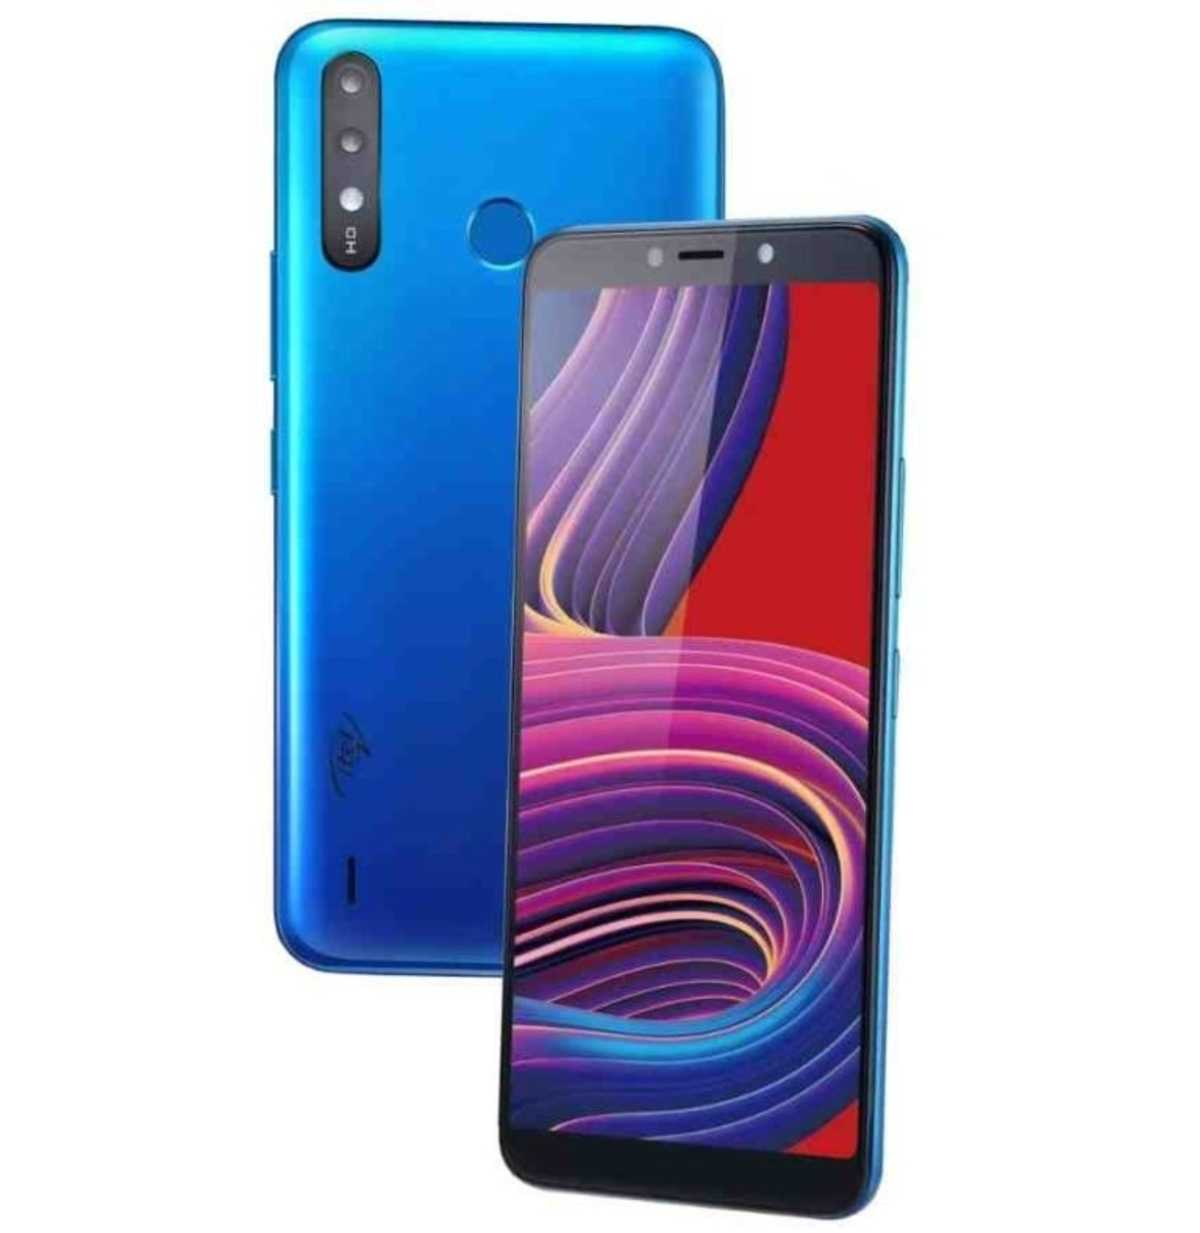 Itel A56 pro price in Nigeria, Itel A56 pro, price of Itel a56 pro in Nigeria, Itel A56 pro specs and price in Nigeria, Itel a56 pro specs, Itel a56 pro price, what is the Price of Itel a56 pro in Nigeria, where to buy Itel a56 in Nigeria, how much is Itel a56 pro in Nigeria